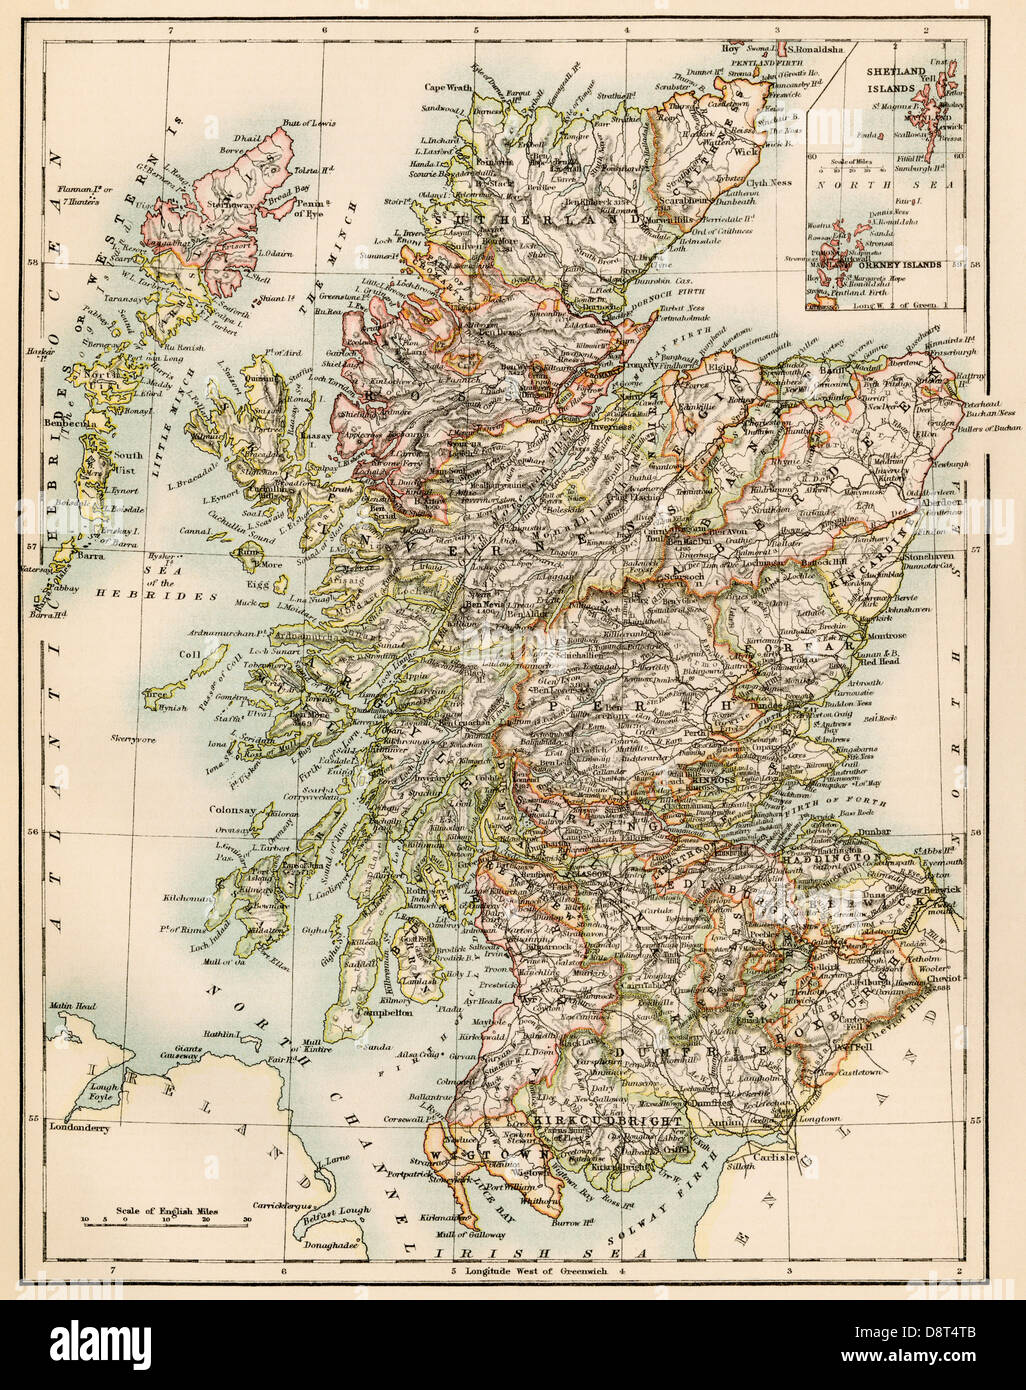 Scotland Old Map Stock Photos & Scotland Old Map Stock Images - Alamy